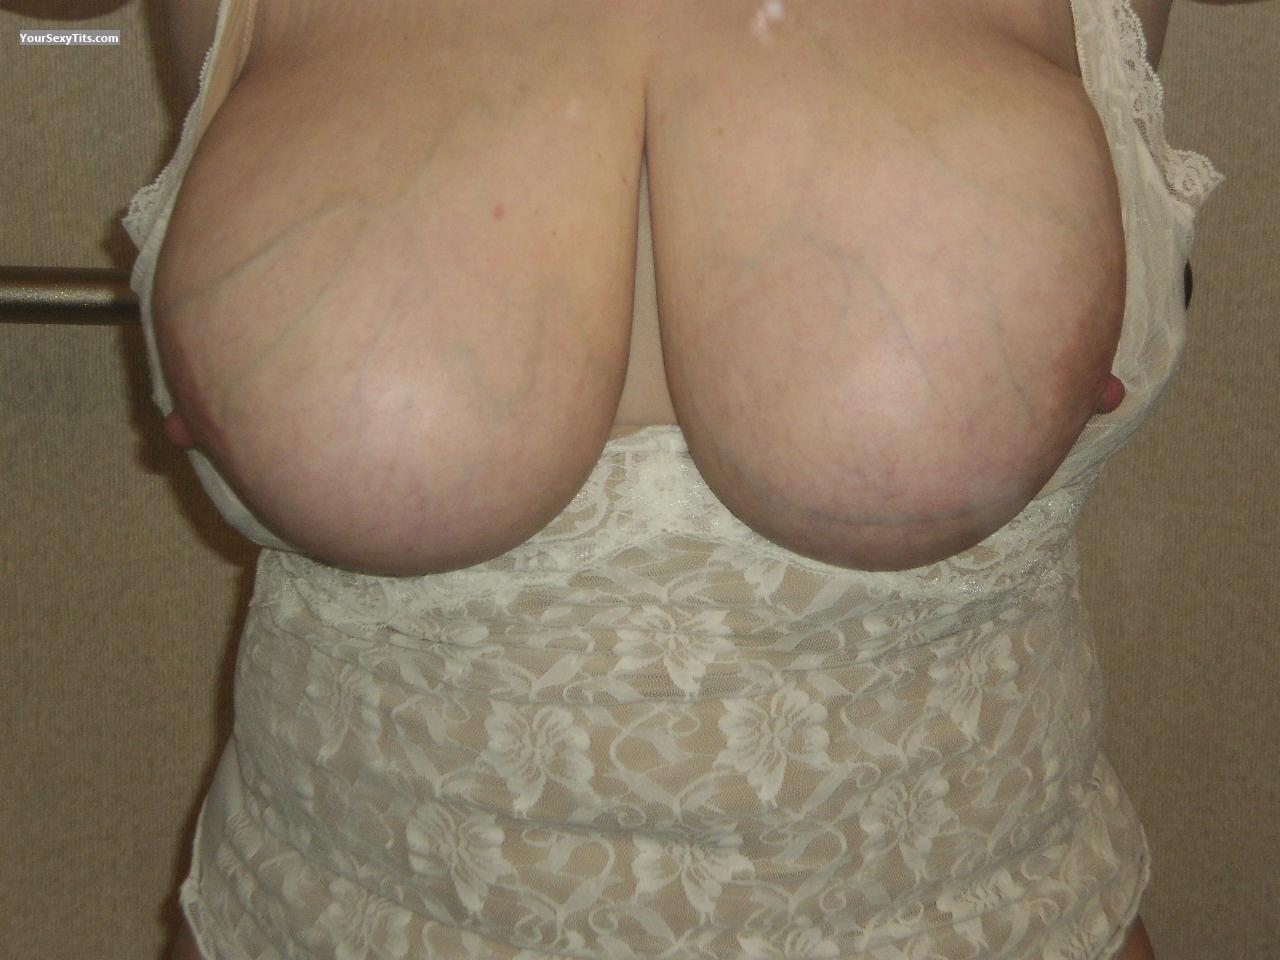 Tit Flash: My Extremely Big Tits (Selfie) - Badsansspouse from United States